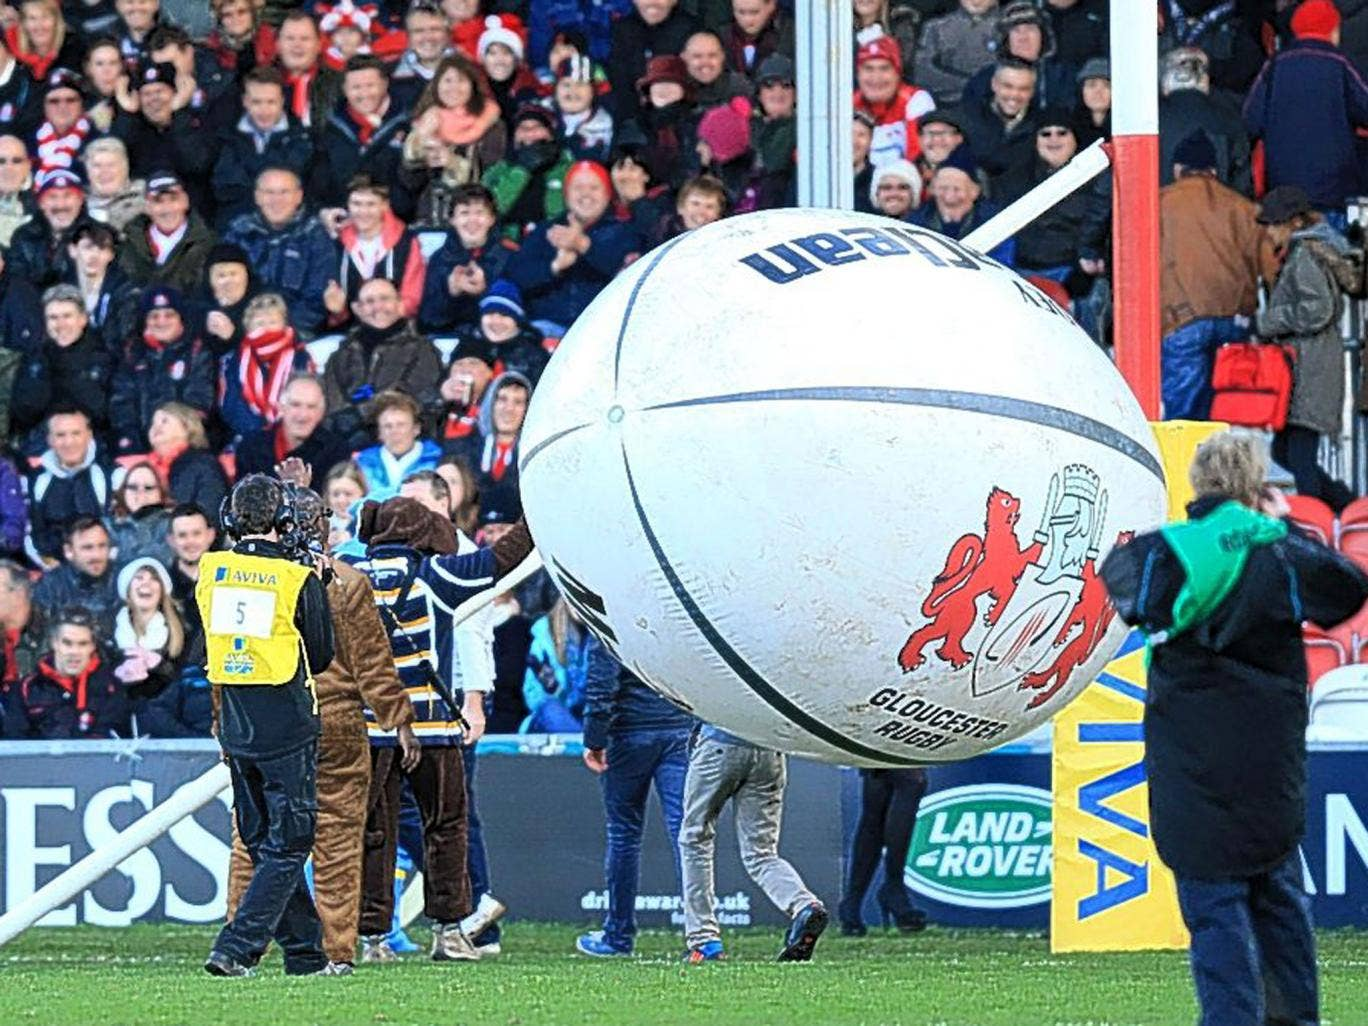 A large inflatable rugby ball broke the crossbar at Gloucester on Sunday, which delayed the kick-off by 30 minutes